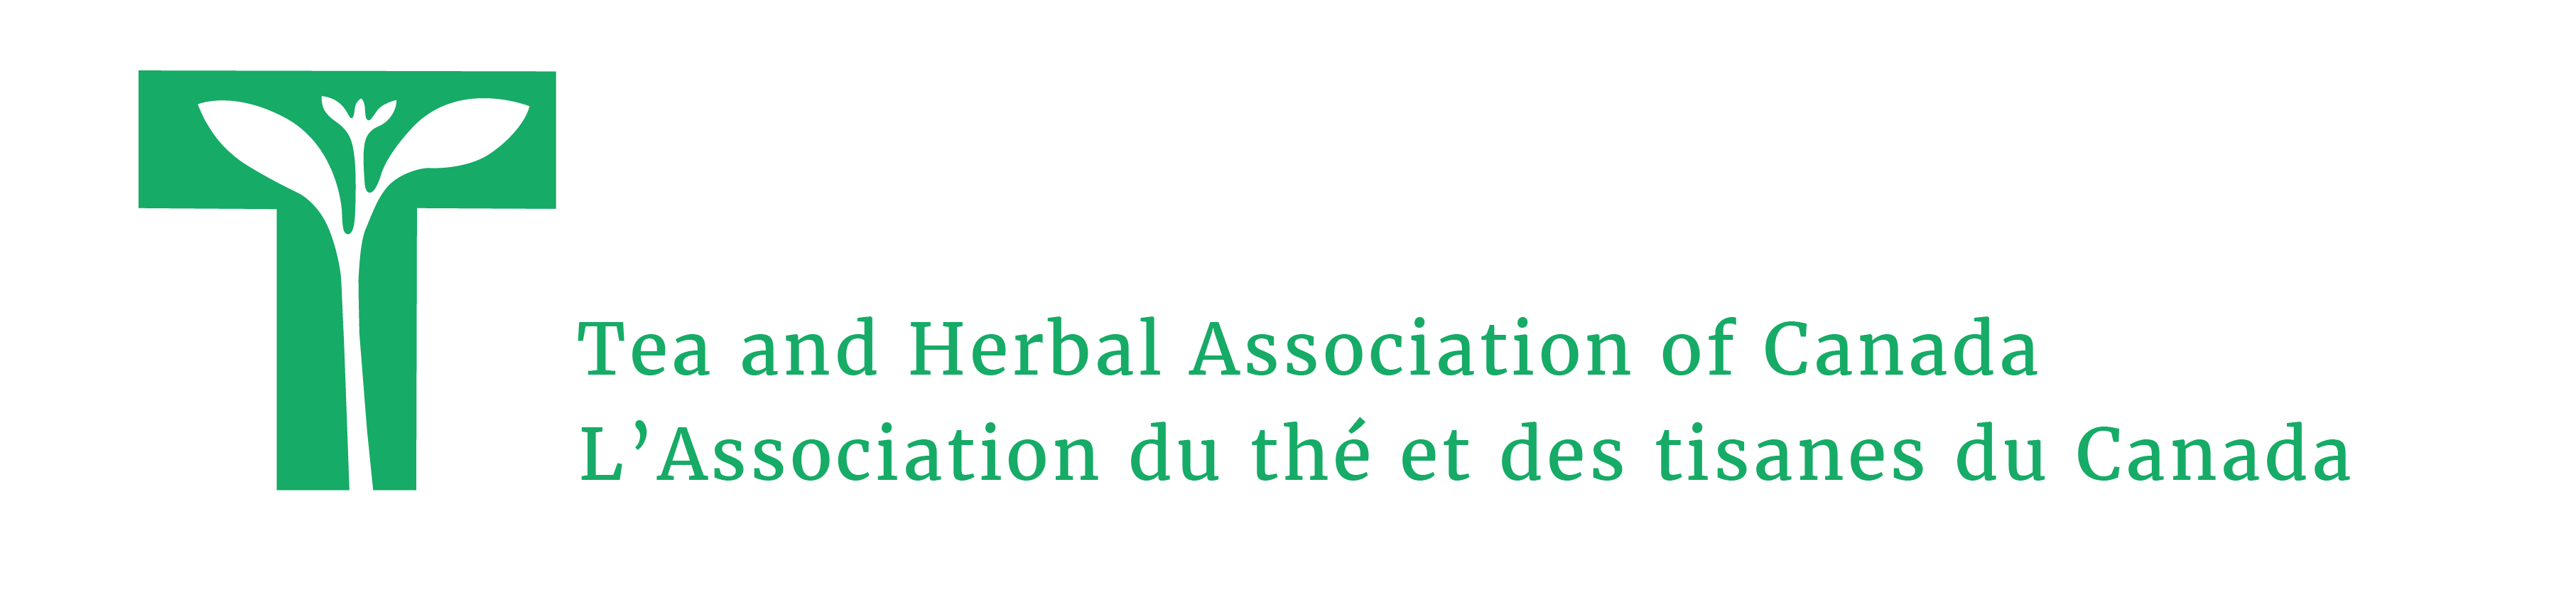 tea and herbal association of canada logo